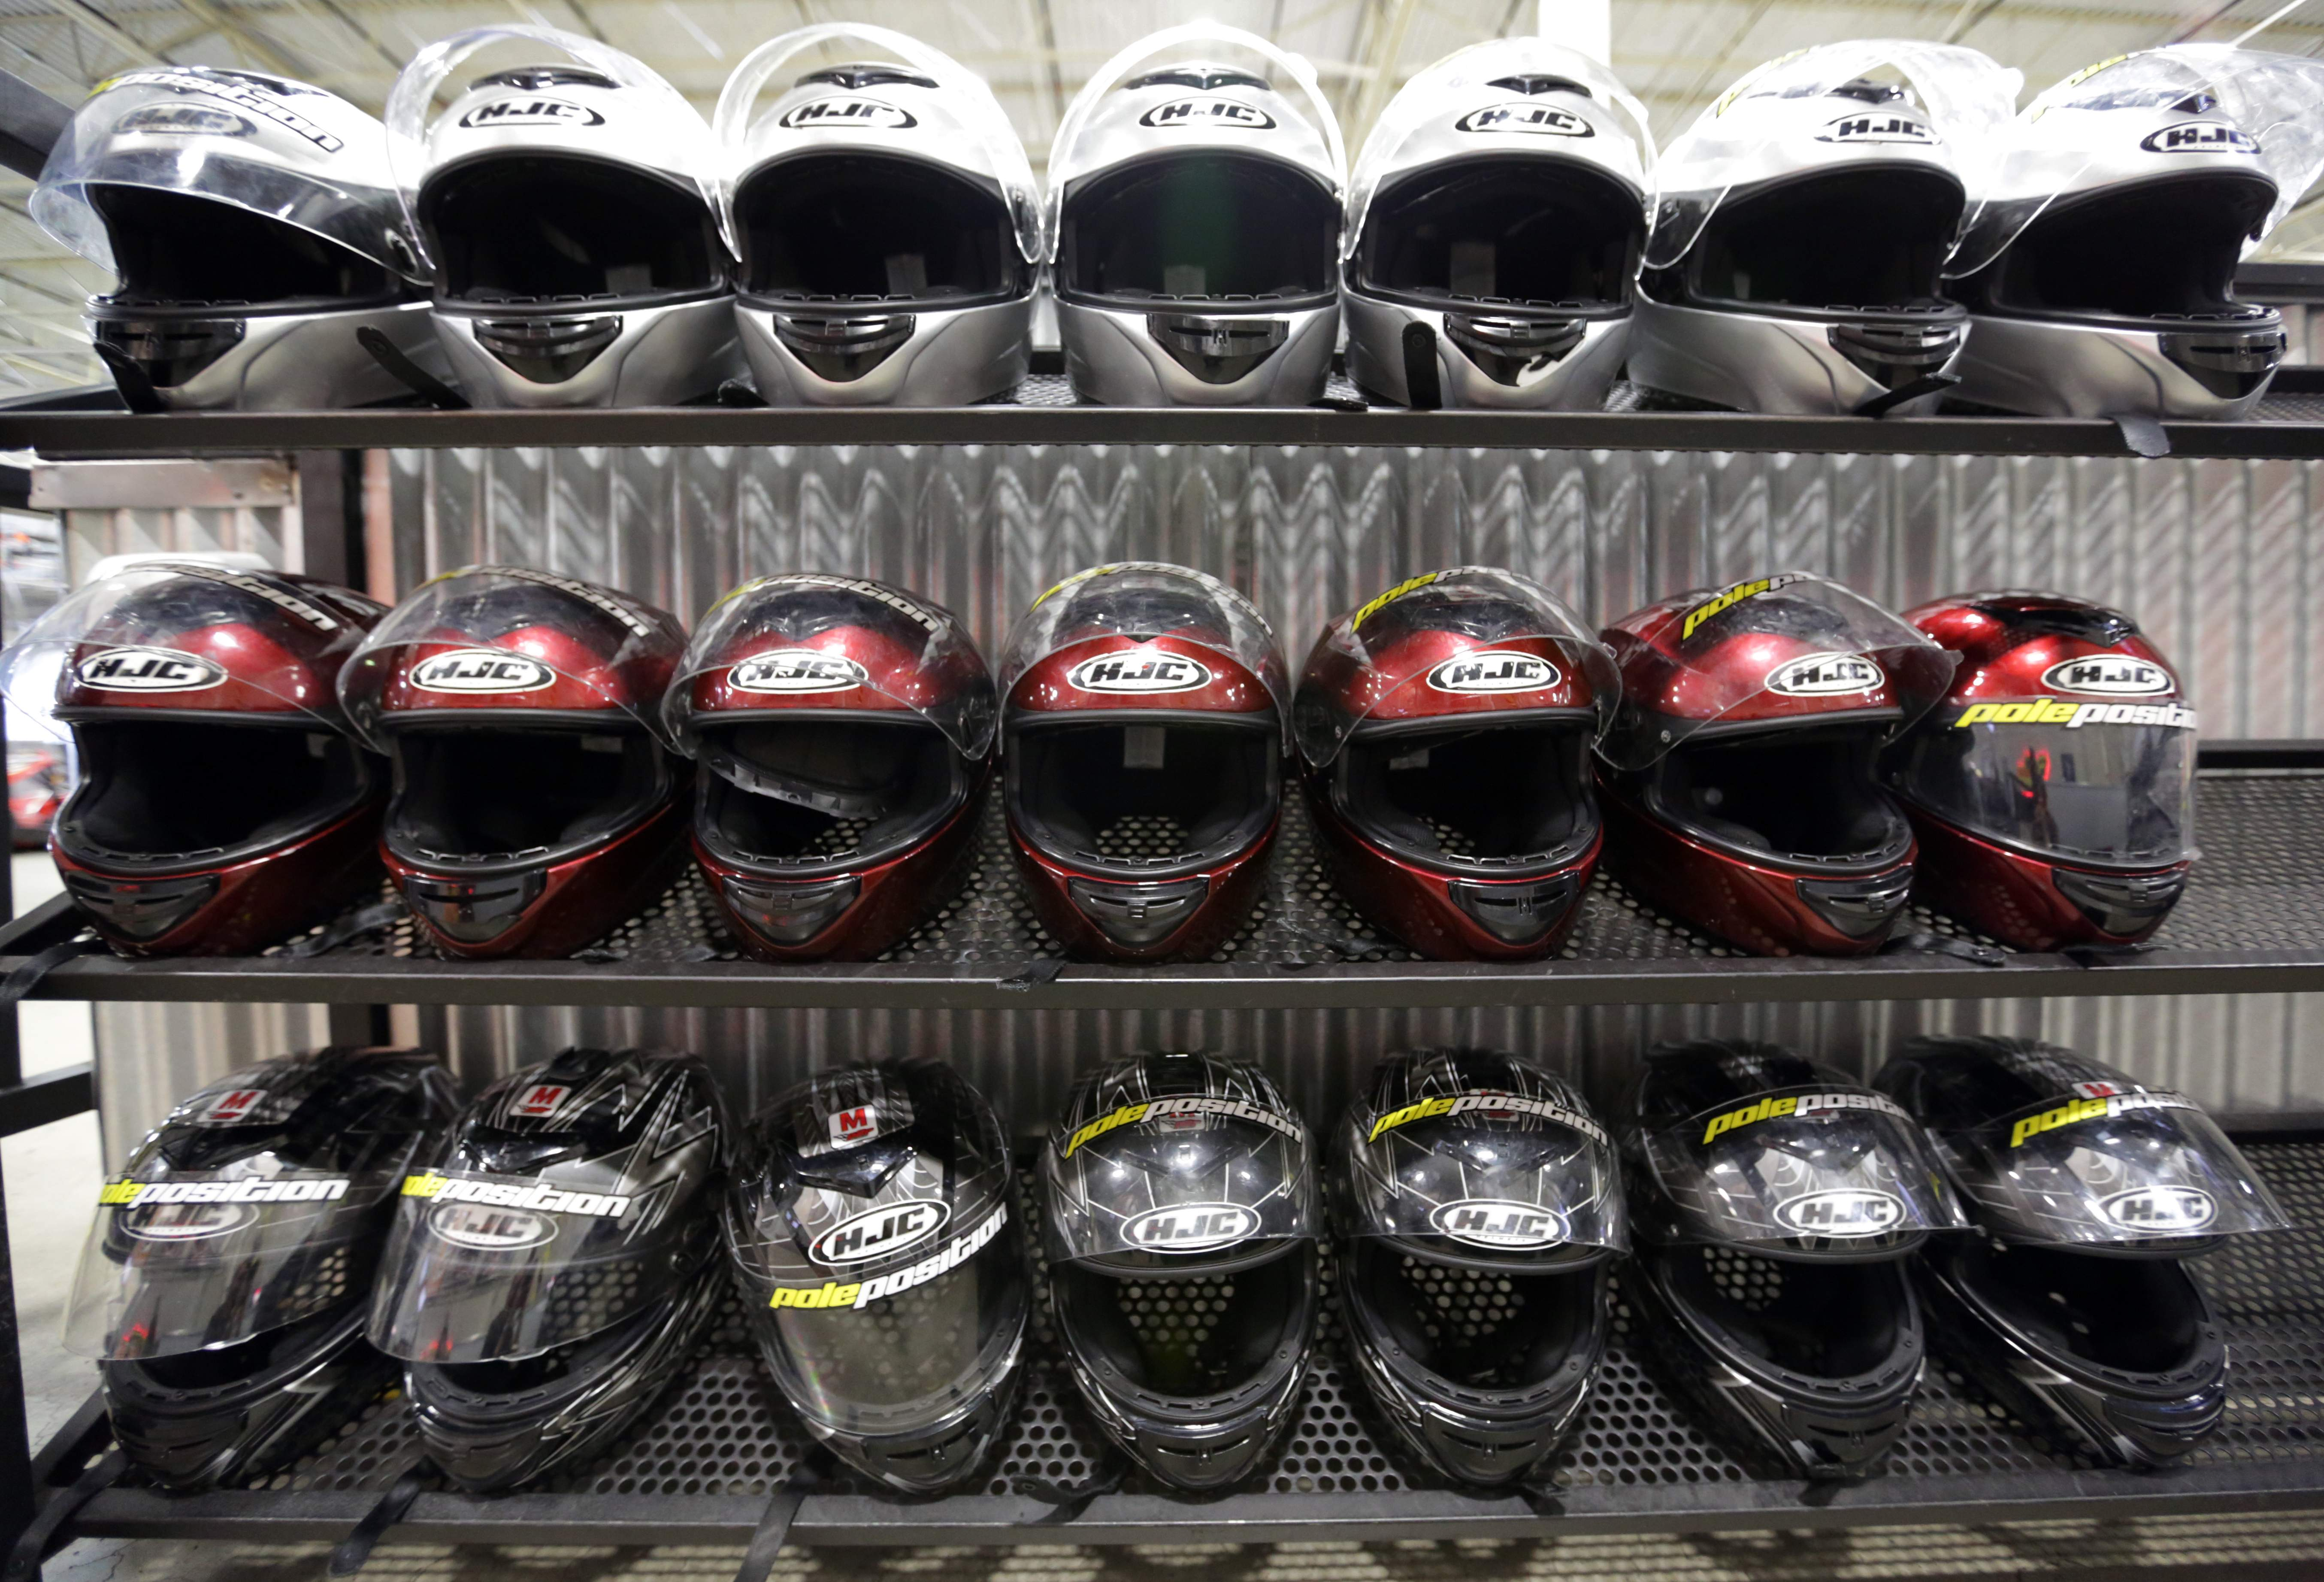 Helmet variations one can wear at Pole Position Raceway in Jersey City.